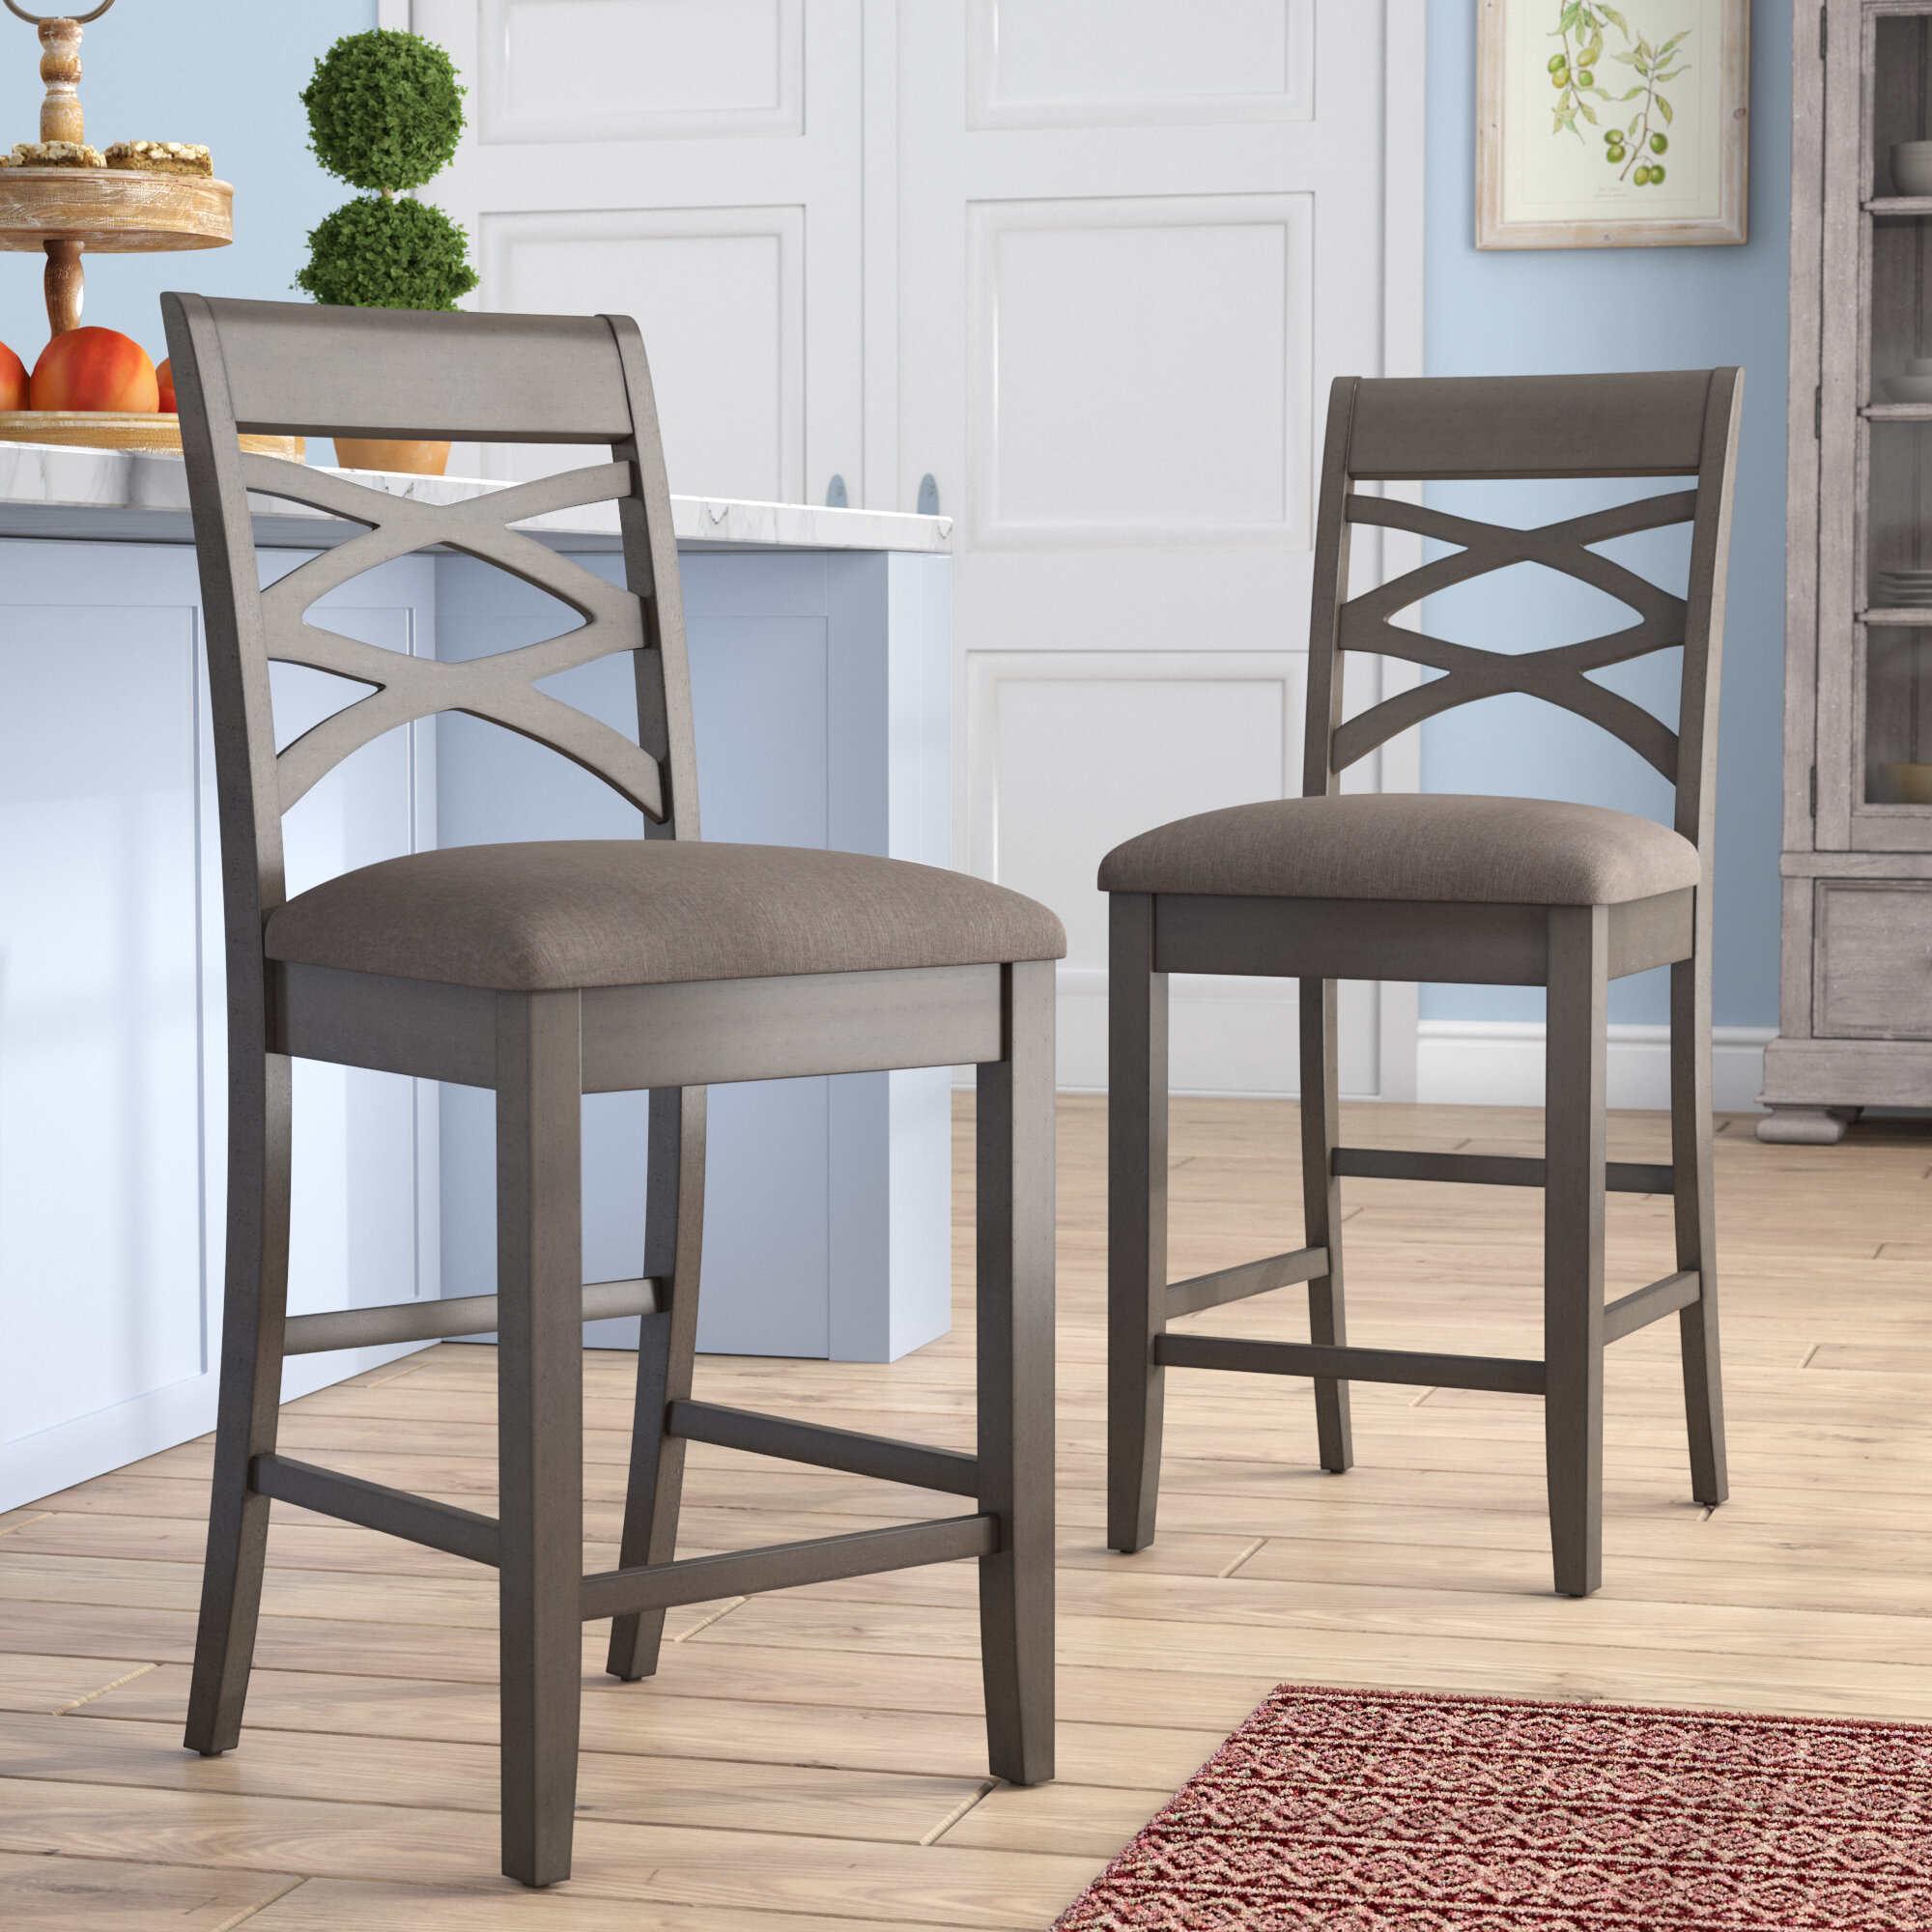 Phenomenal Jeanine Wood Double Cross Back 24 Bar Stool Pdpeps Interior Chair Design Pdpepsorg